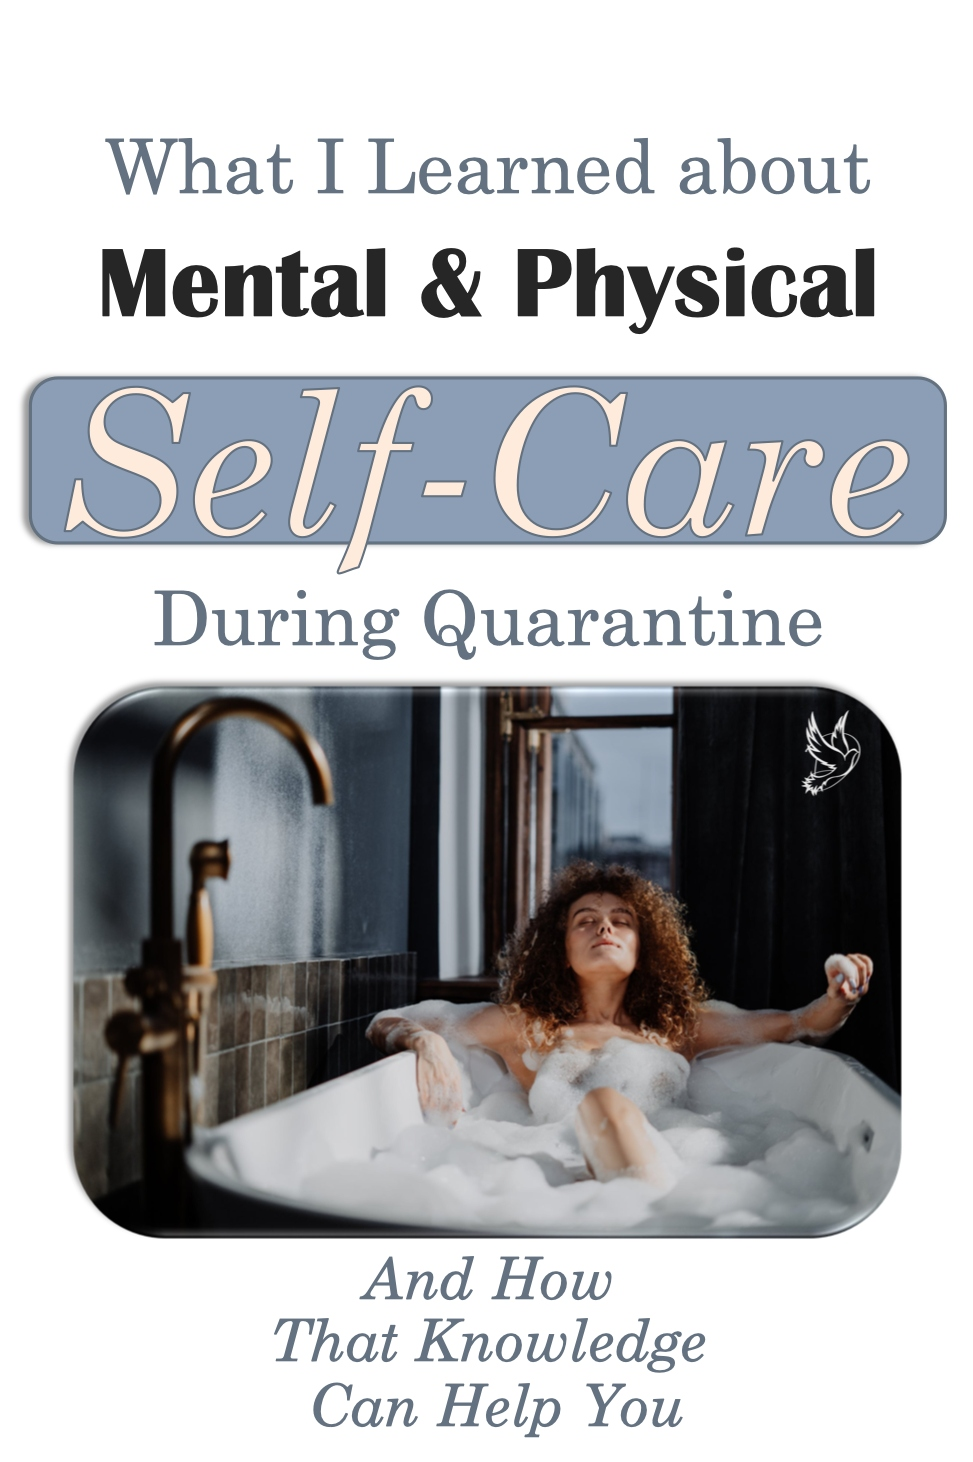 Mental and Physical Self-Care